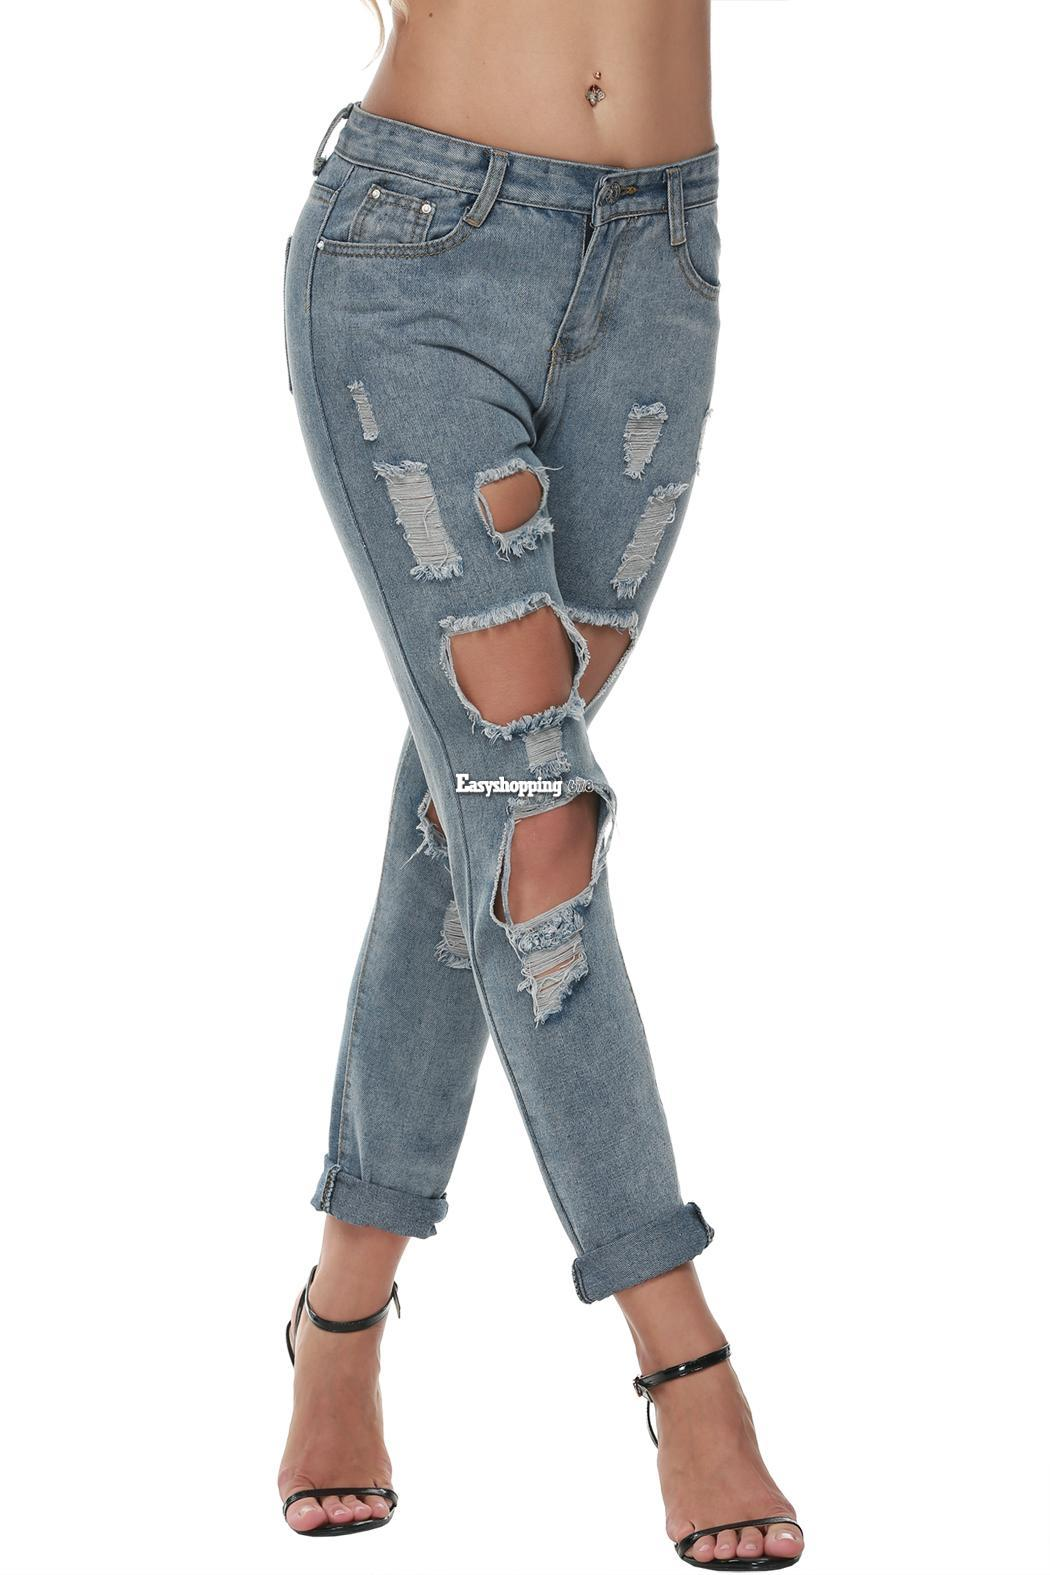 Find great deals on Womens Distressed Jeans at Kohl's today! Sponsored Links Outside companies pay to advertise via these links when specific phrases and words are searched.